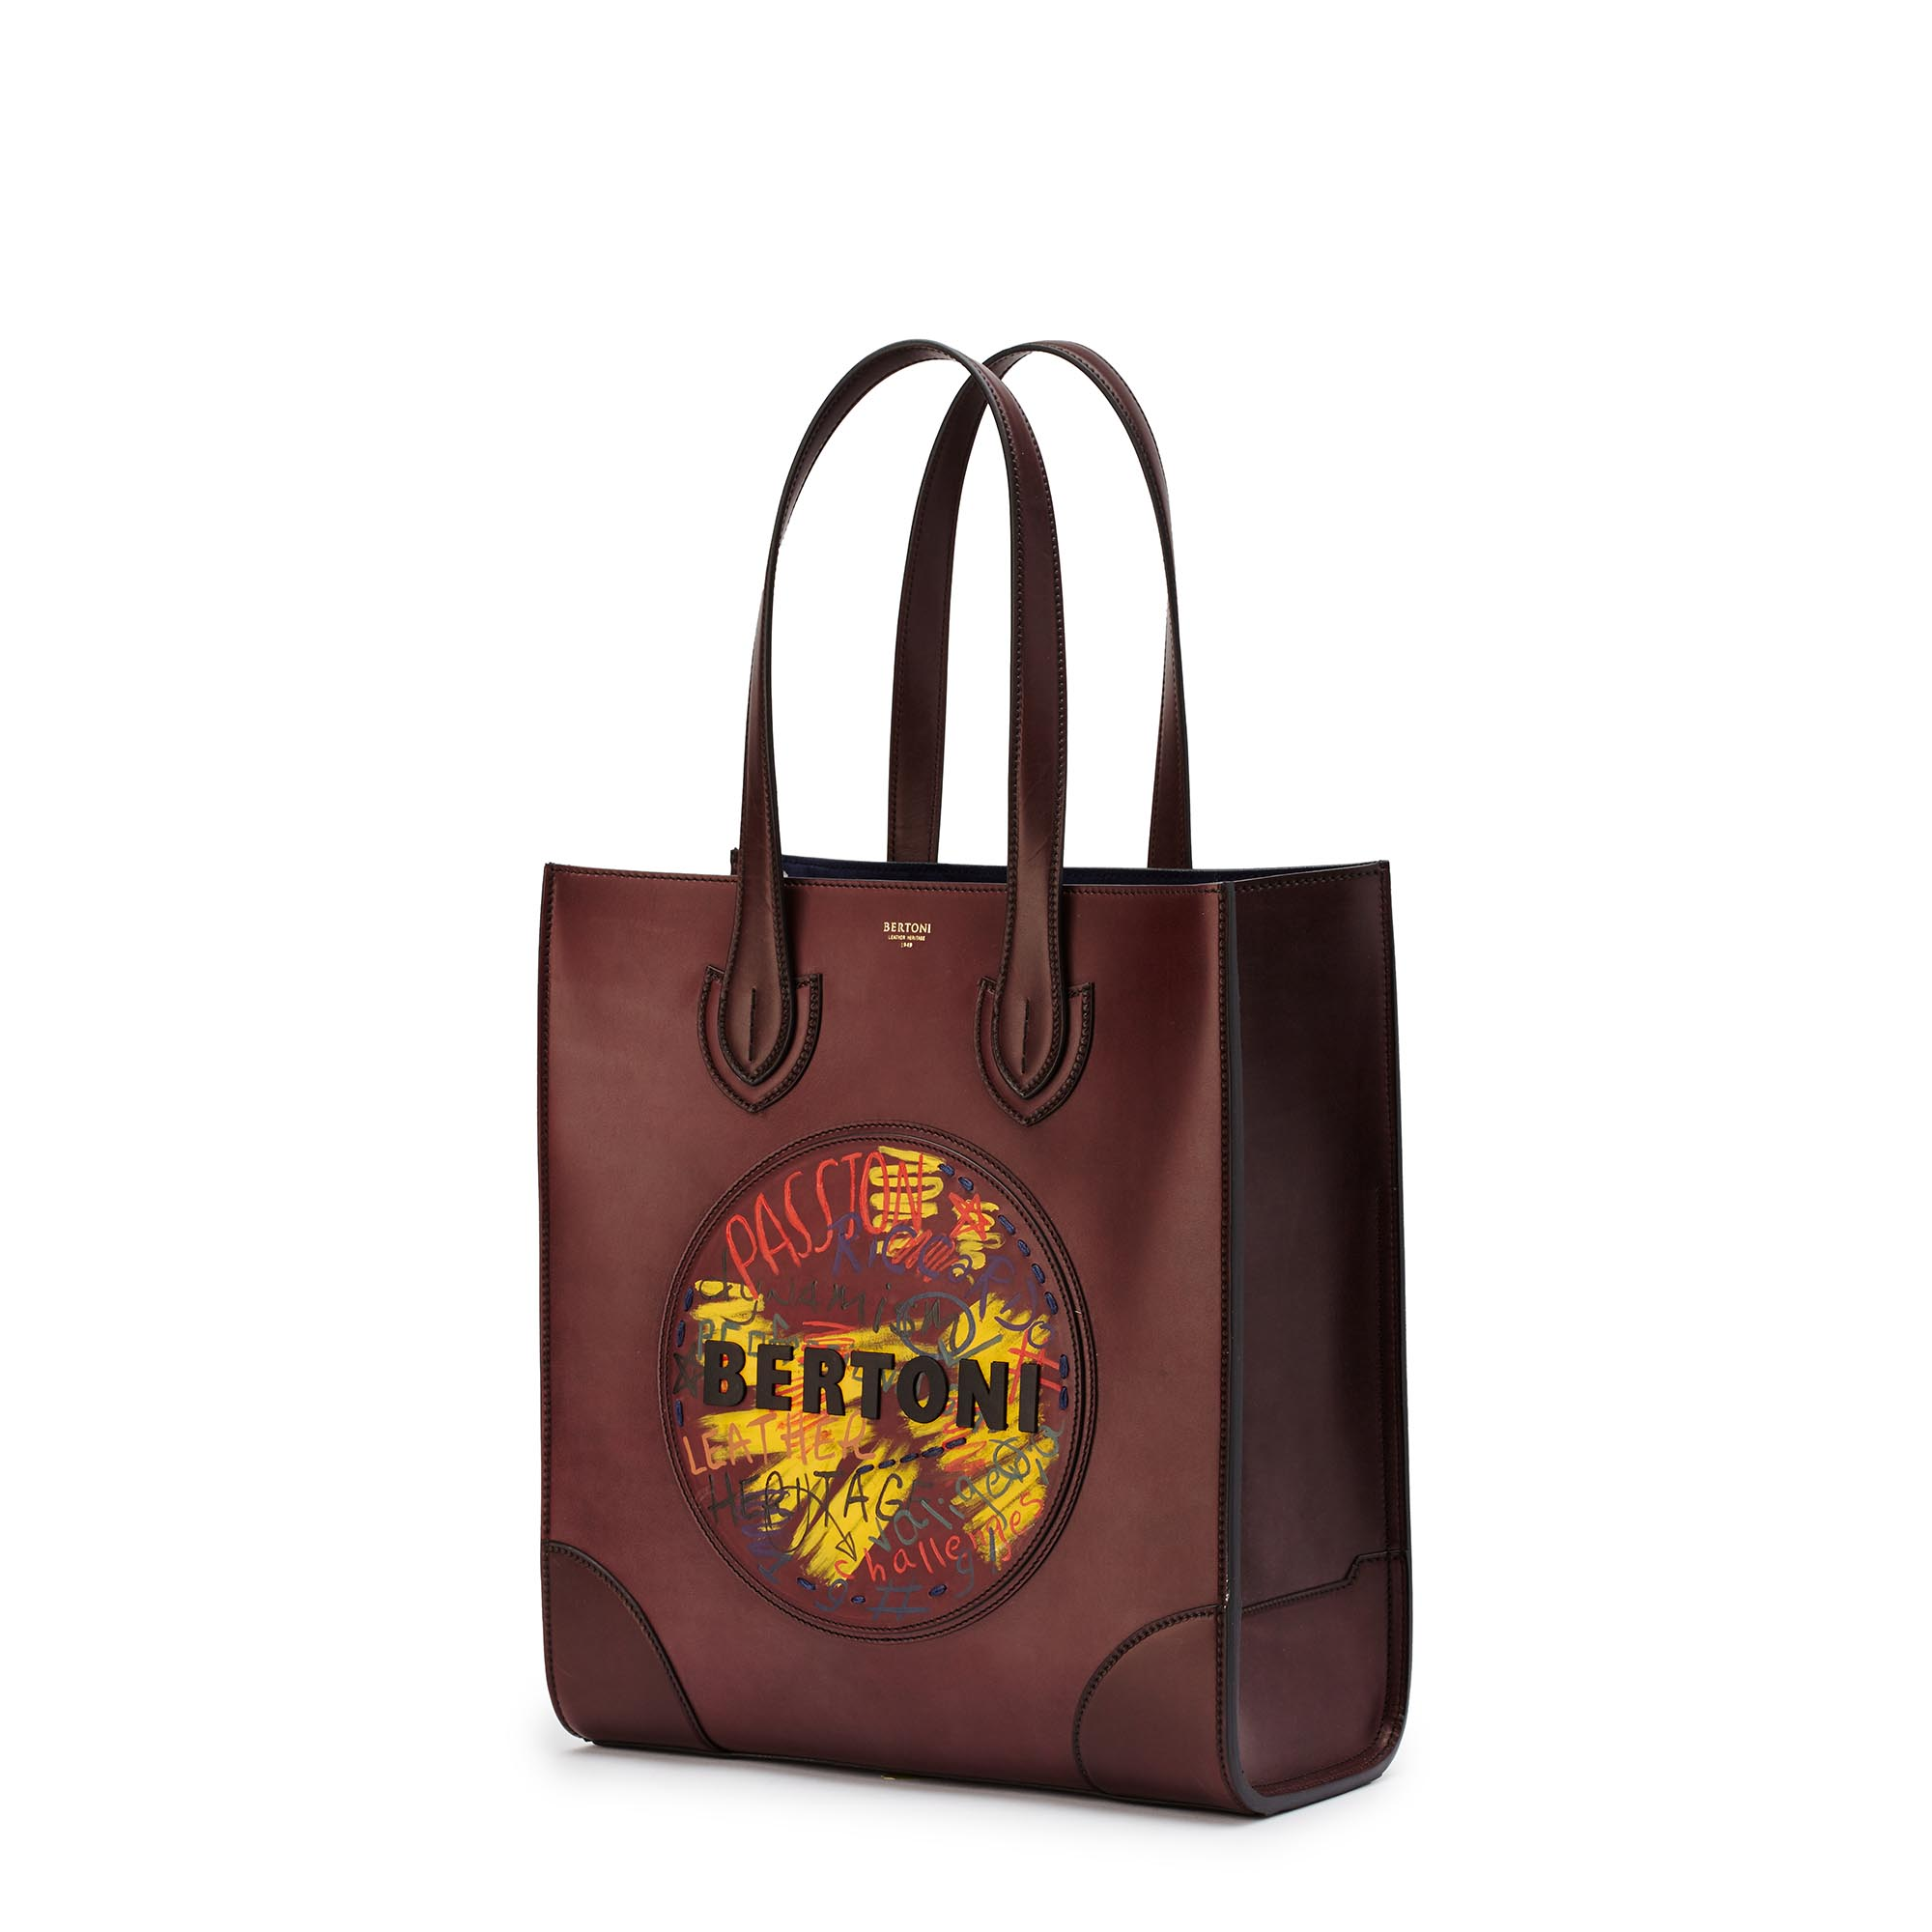 Signature-Tote-bordeaux-french-calf-bag-Bertoni-1949_02